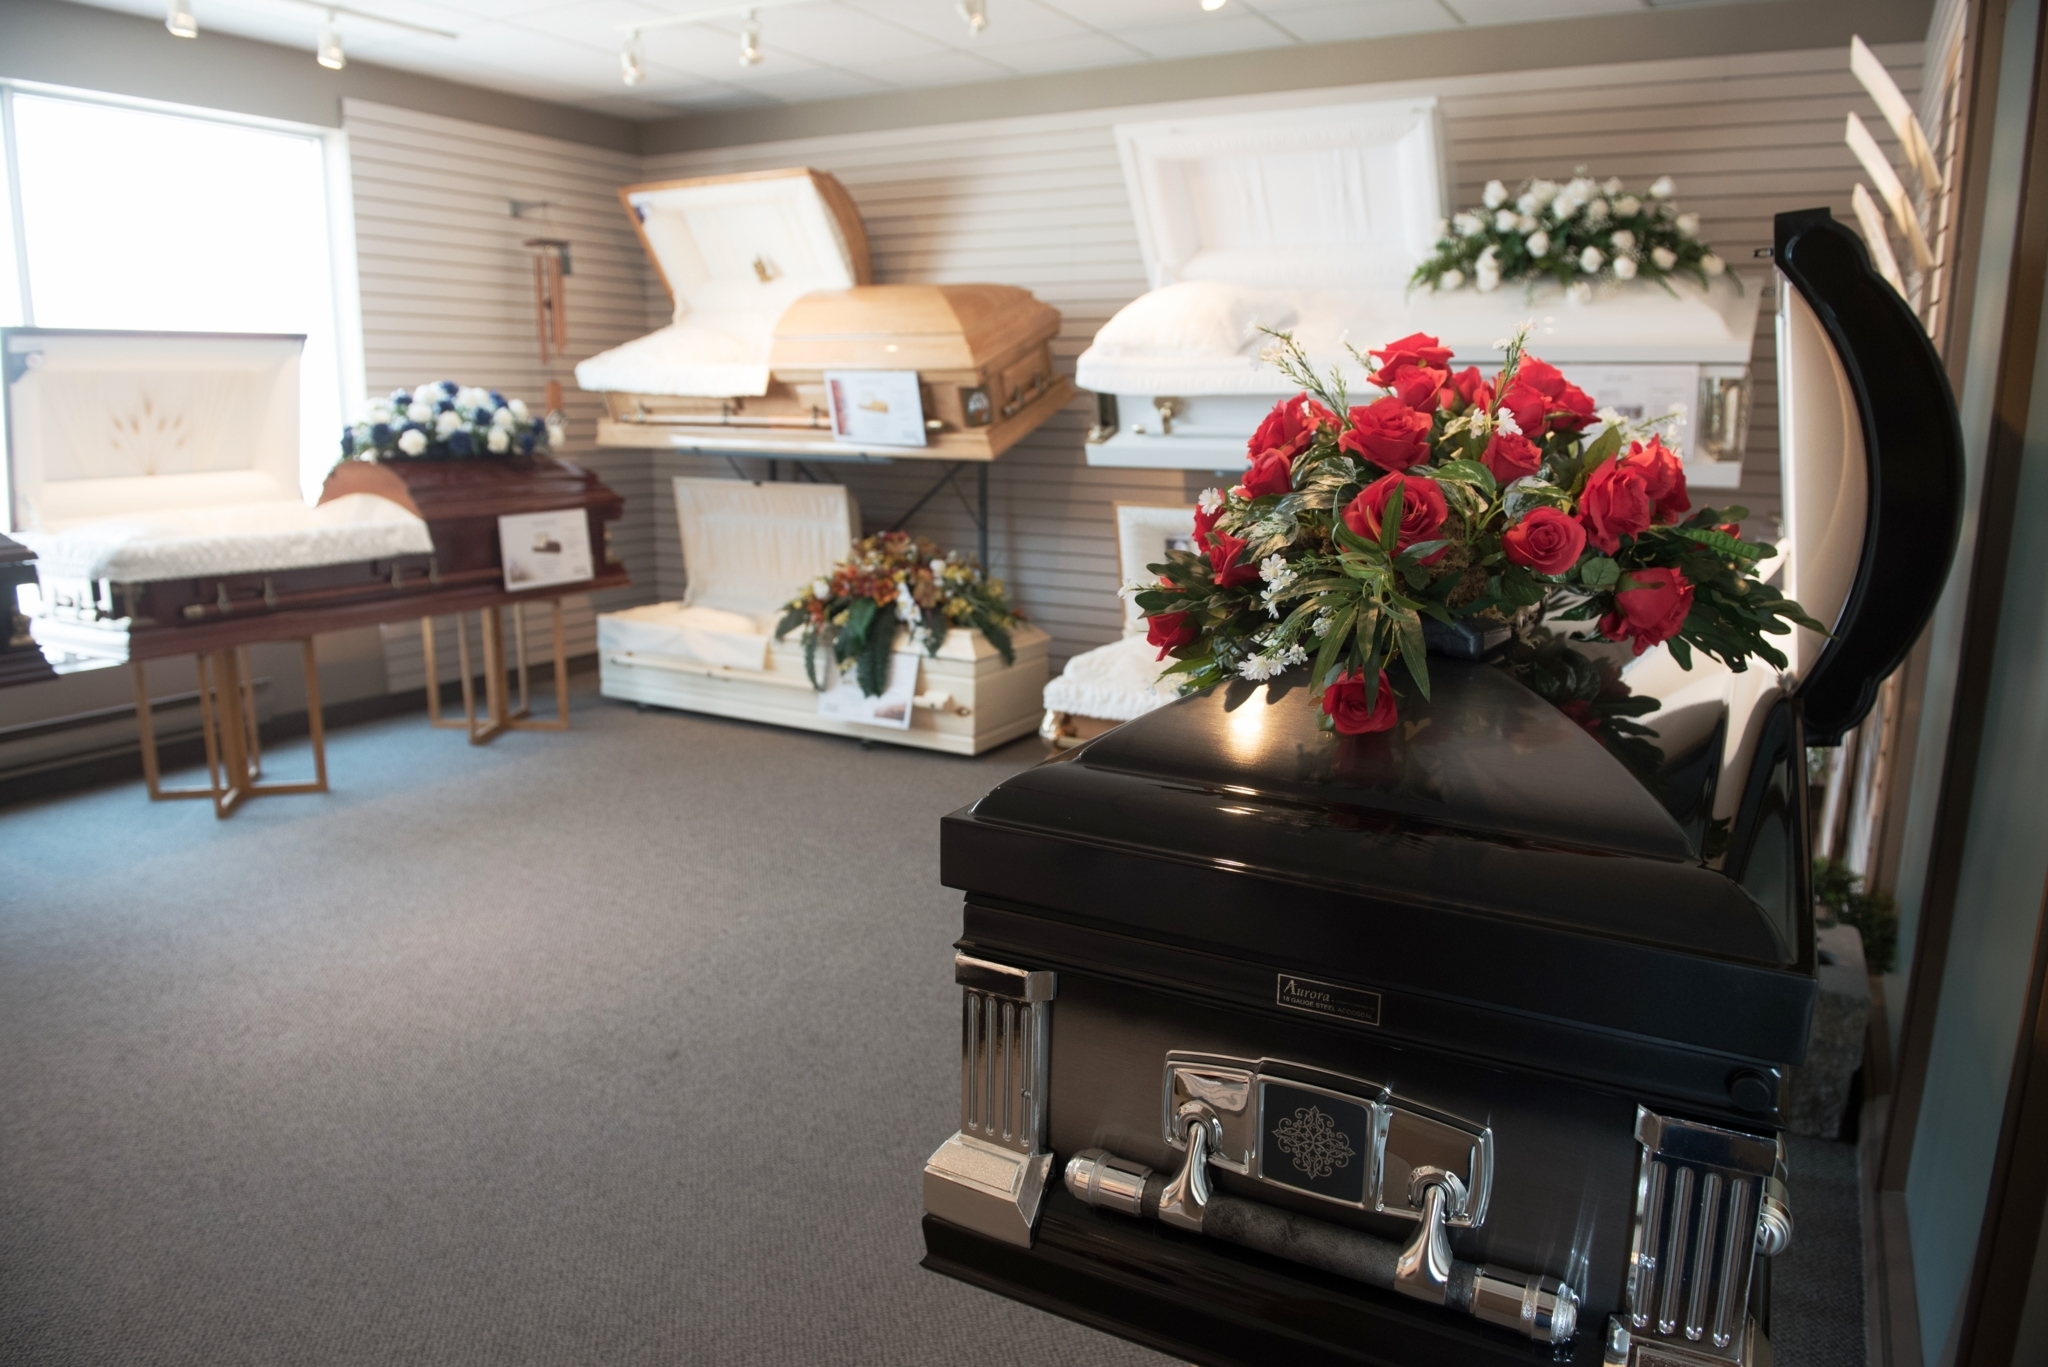 c boswell funeral - HD2048×1367